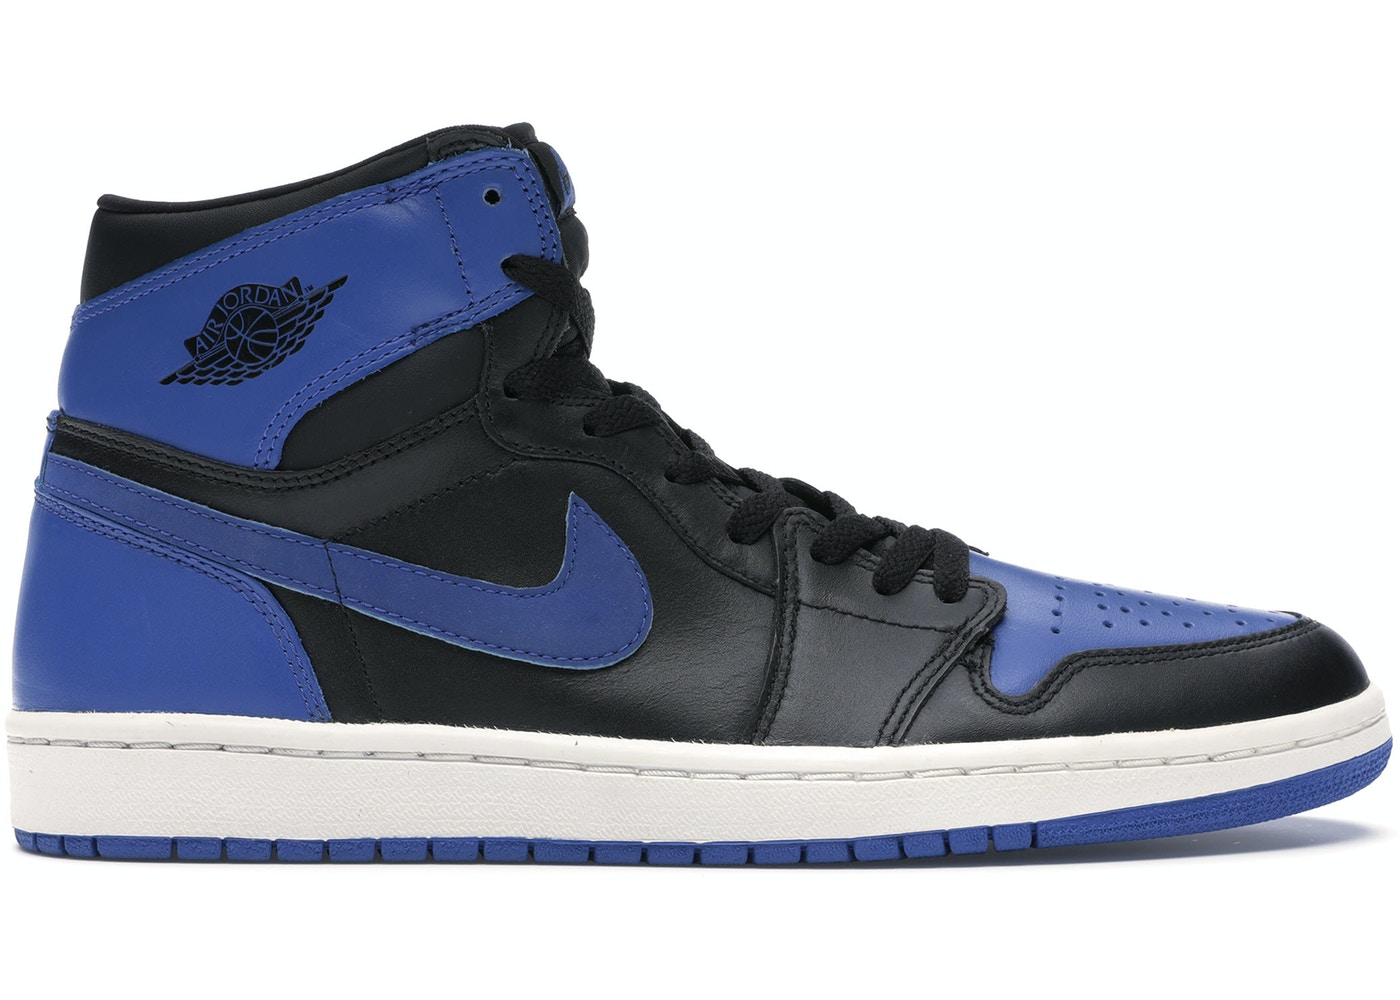 21c0a891 Jordan 1 Retro Black Royal Blue (2001) - 136066-041